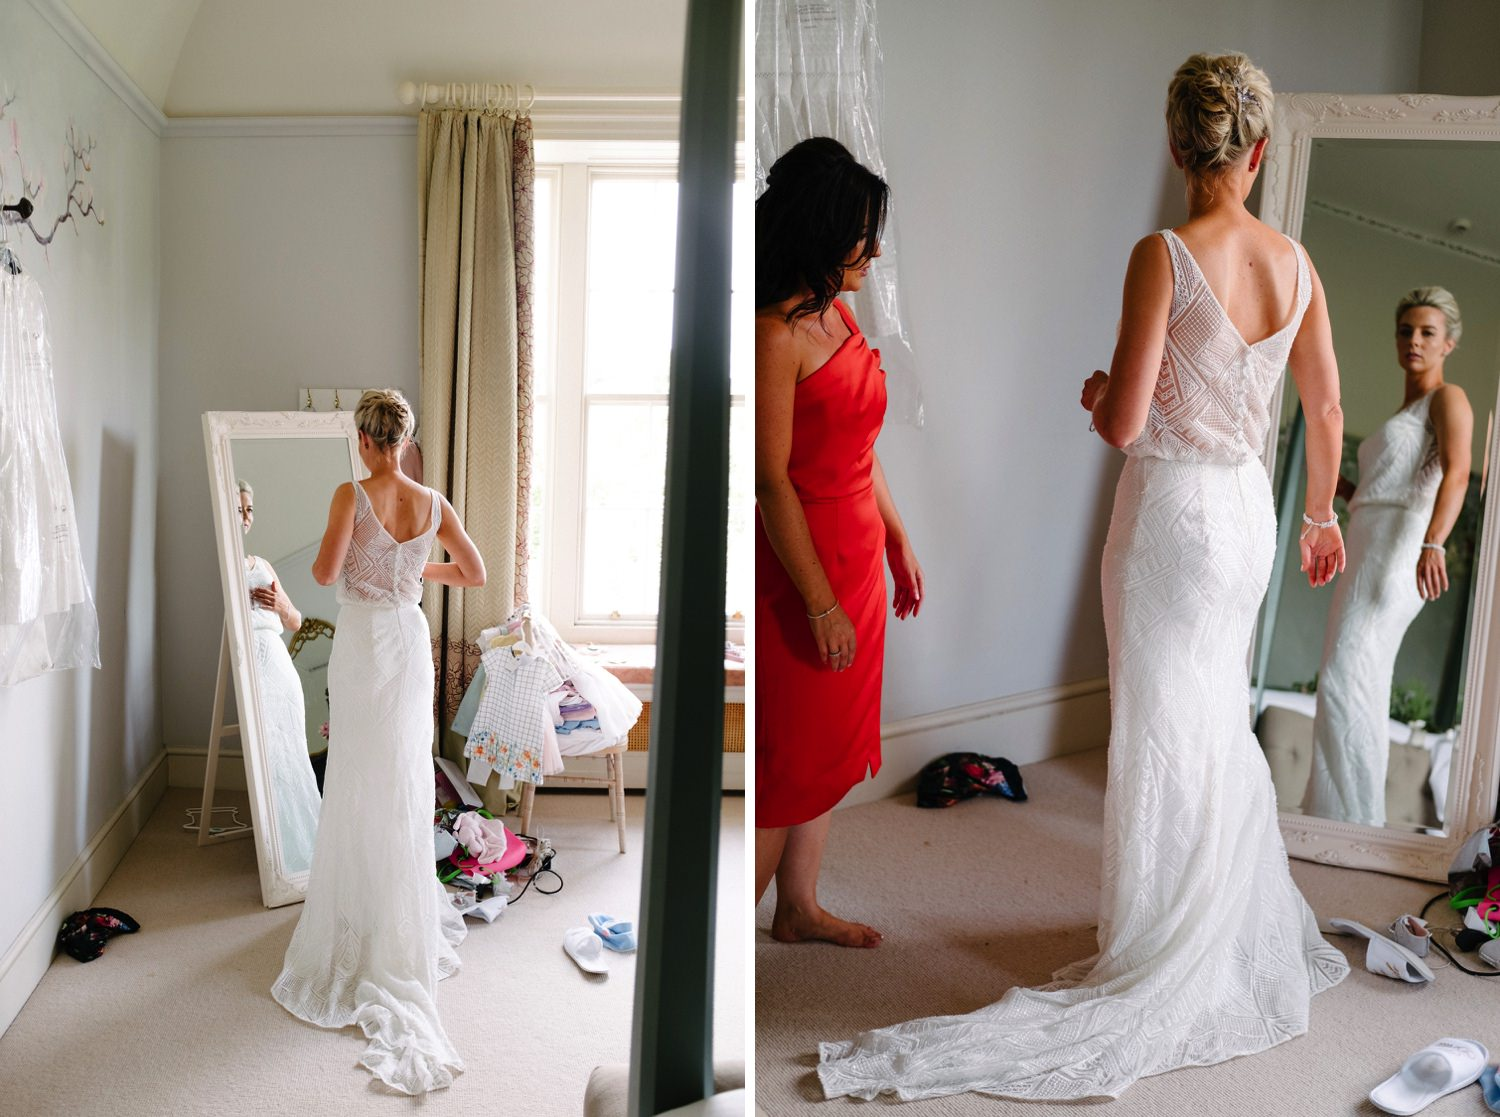 dmp0250_dmp0253_gay_preparation_samesex_weddingdress_ireland_brides_wedding_laois